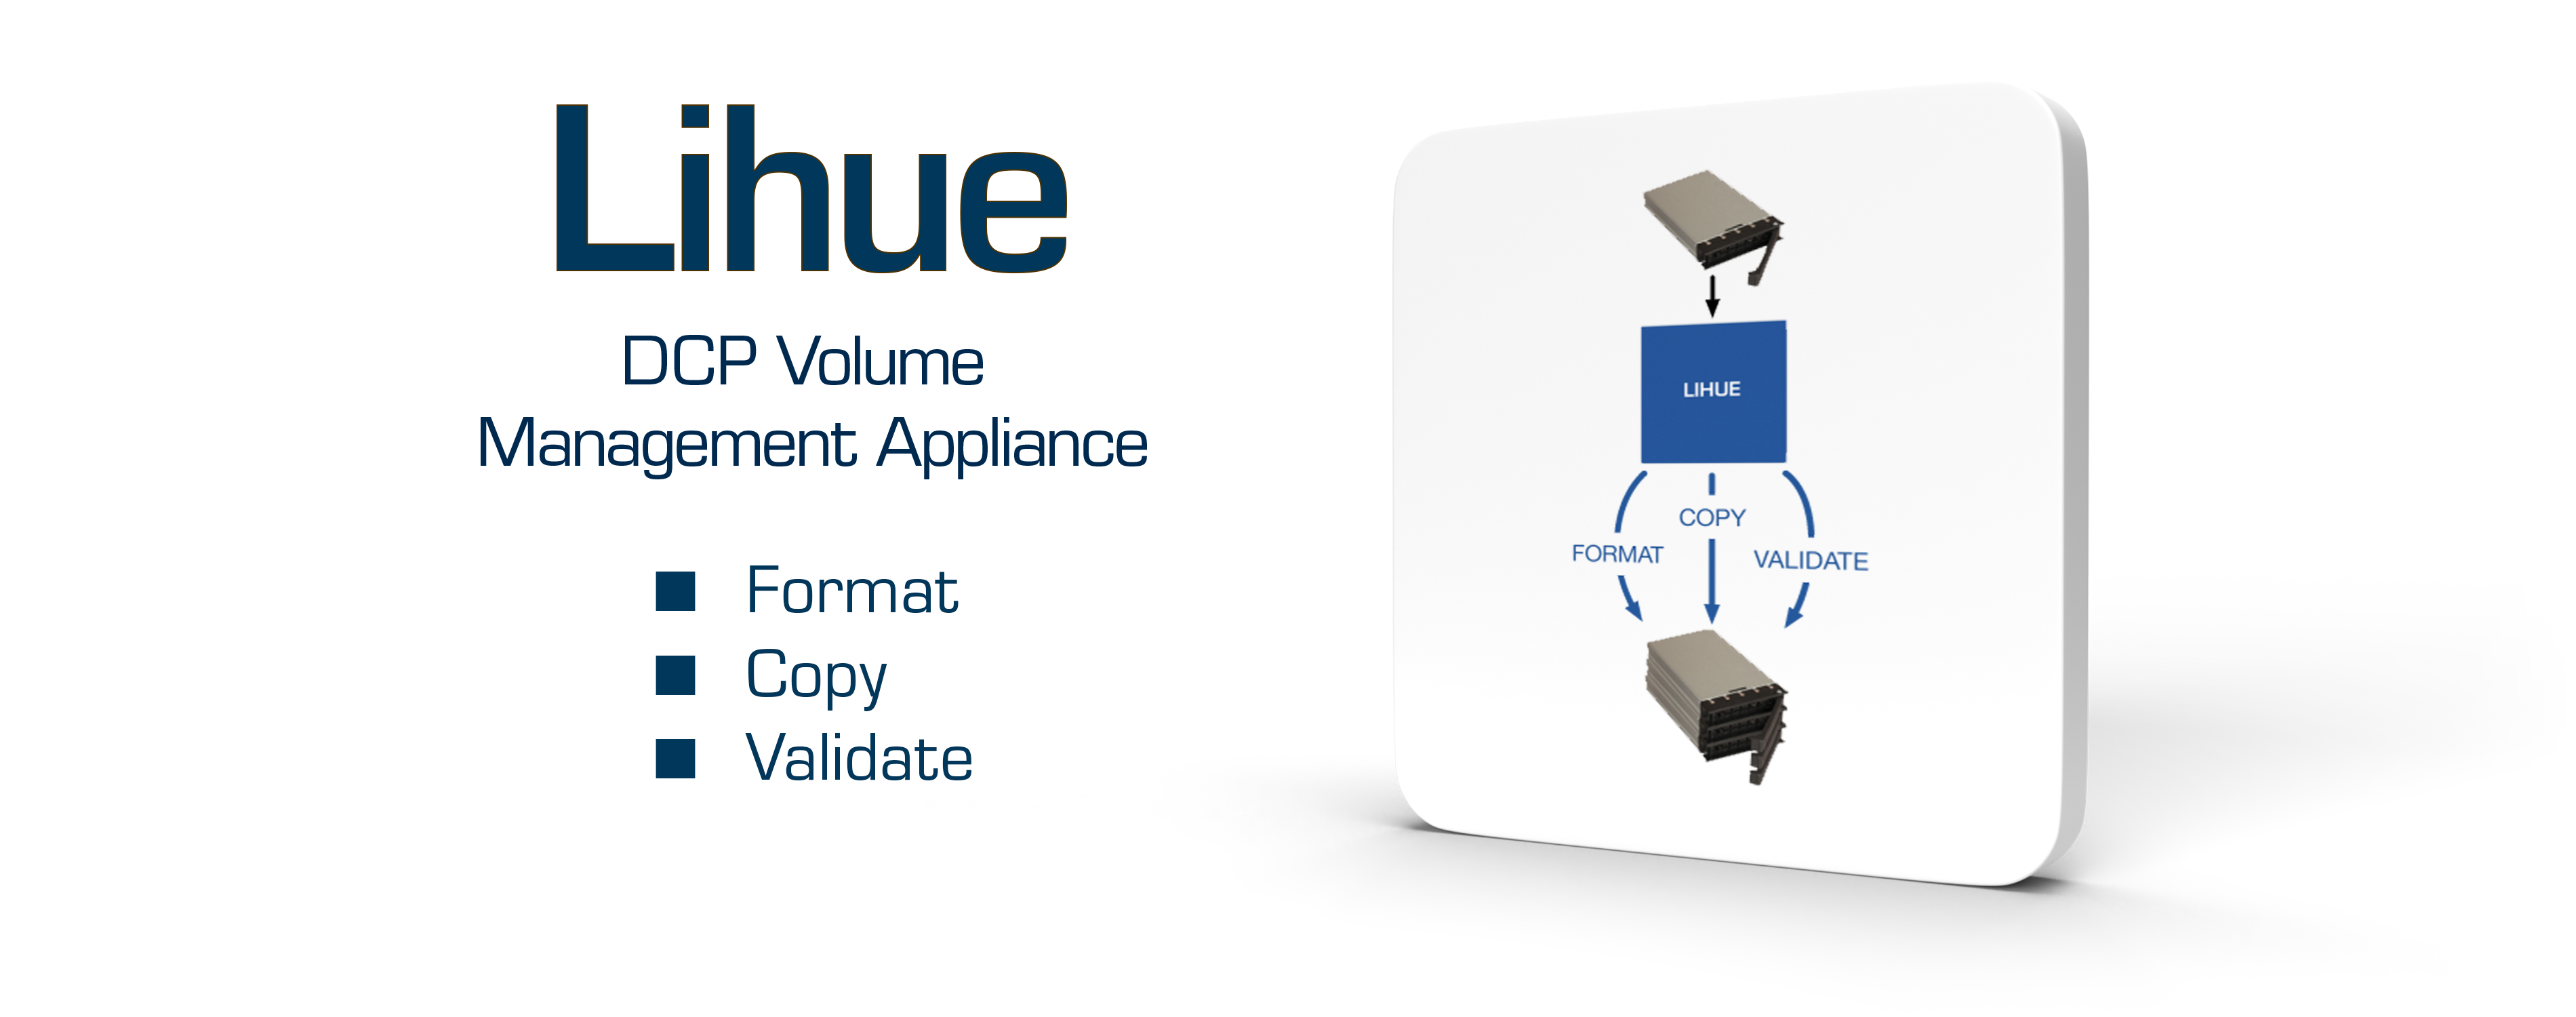 Lihue - DCP Volume Management Appliance - Format - Copy - Validate